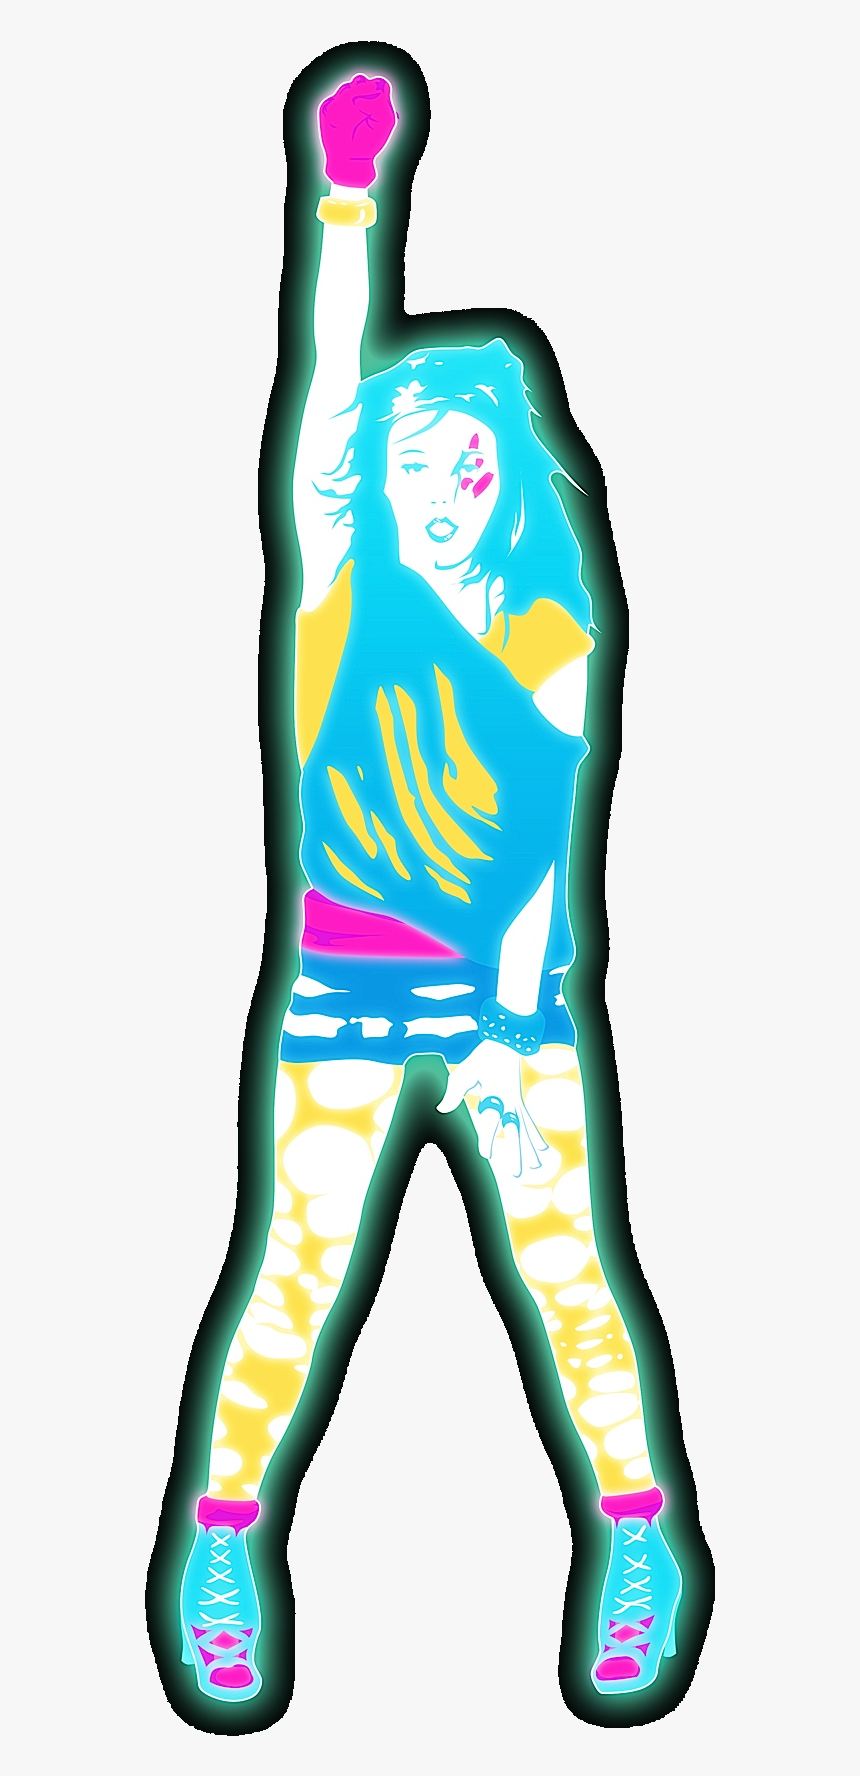 Just Dance Tik Tok Just Dance 2 Tik Tok Hd Png Download Transparent Png Image Pngitem